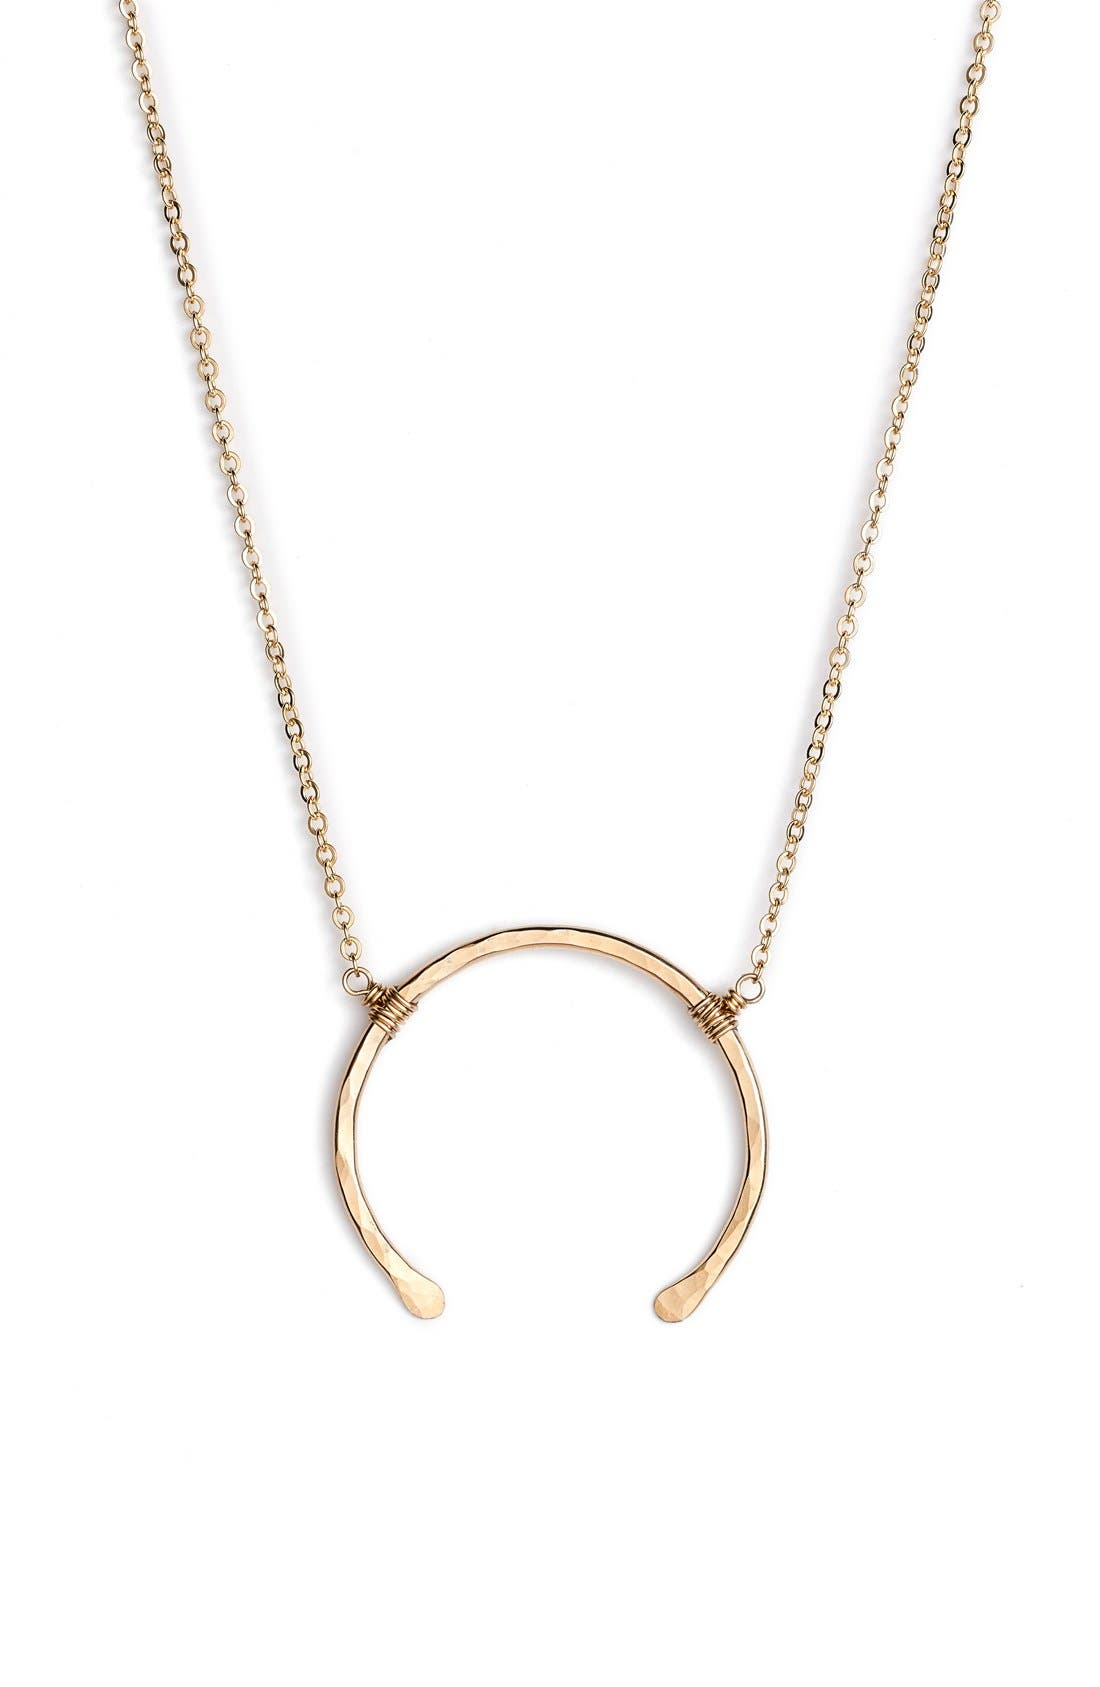 NASHELLE 'Imogen' Crescent Pendant Necklace